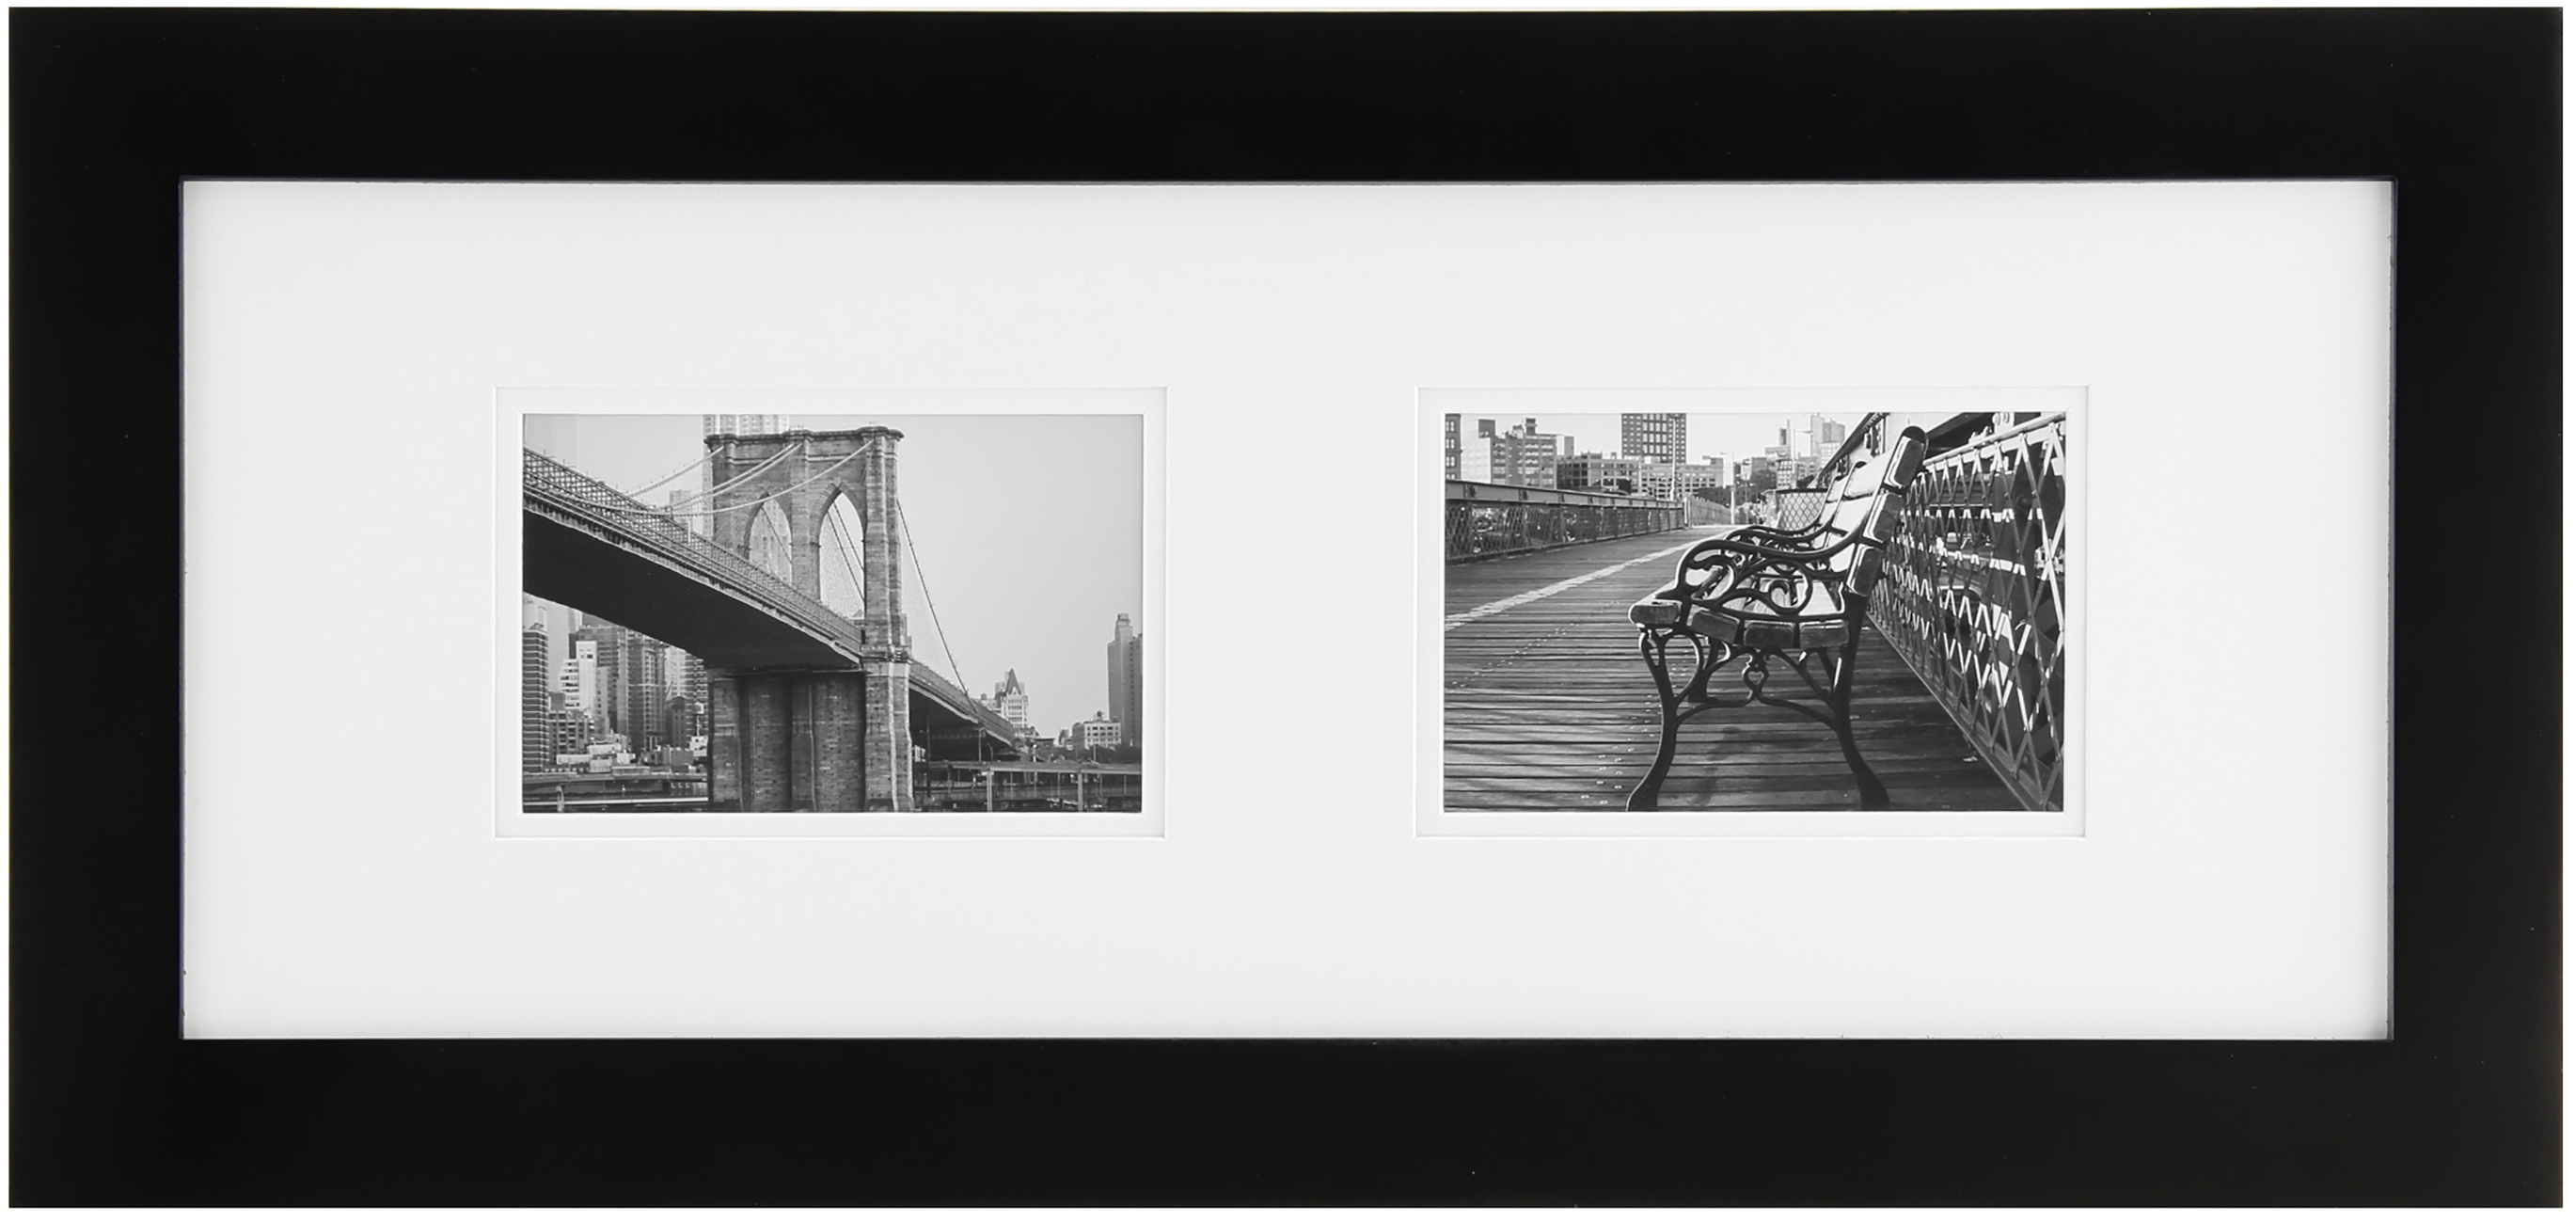 gallery solutions 8x20 black frame matted to 2 6x4